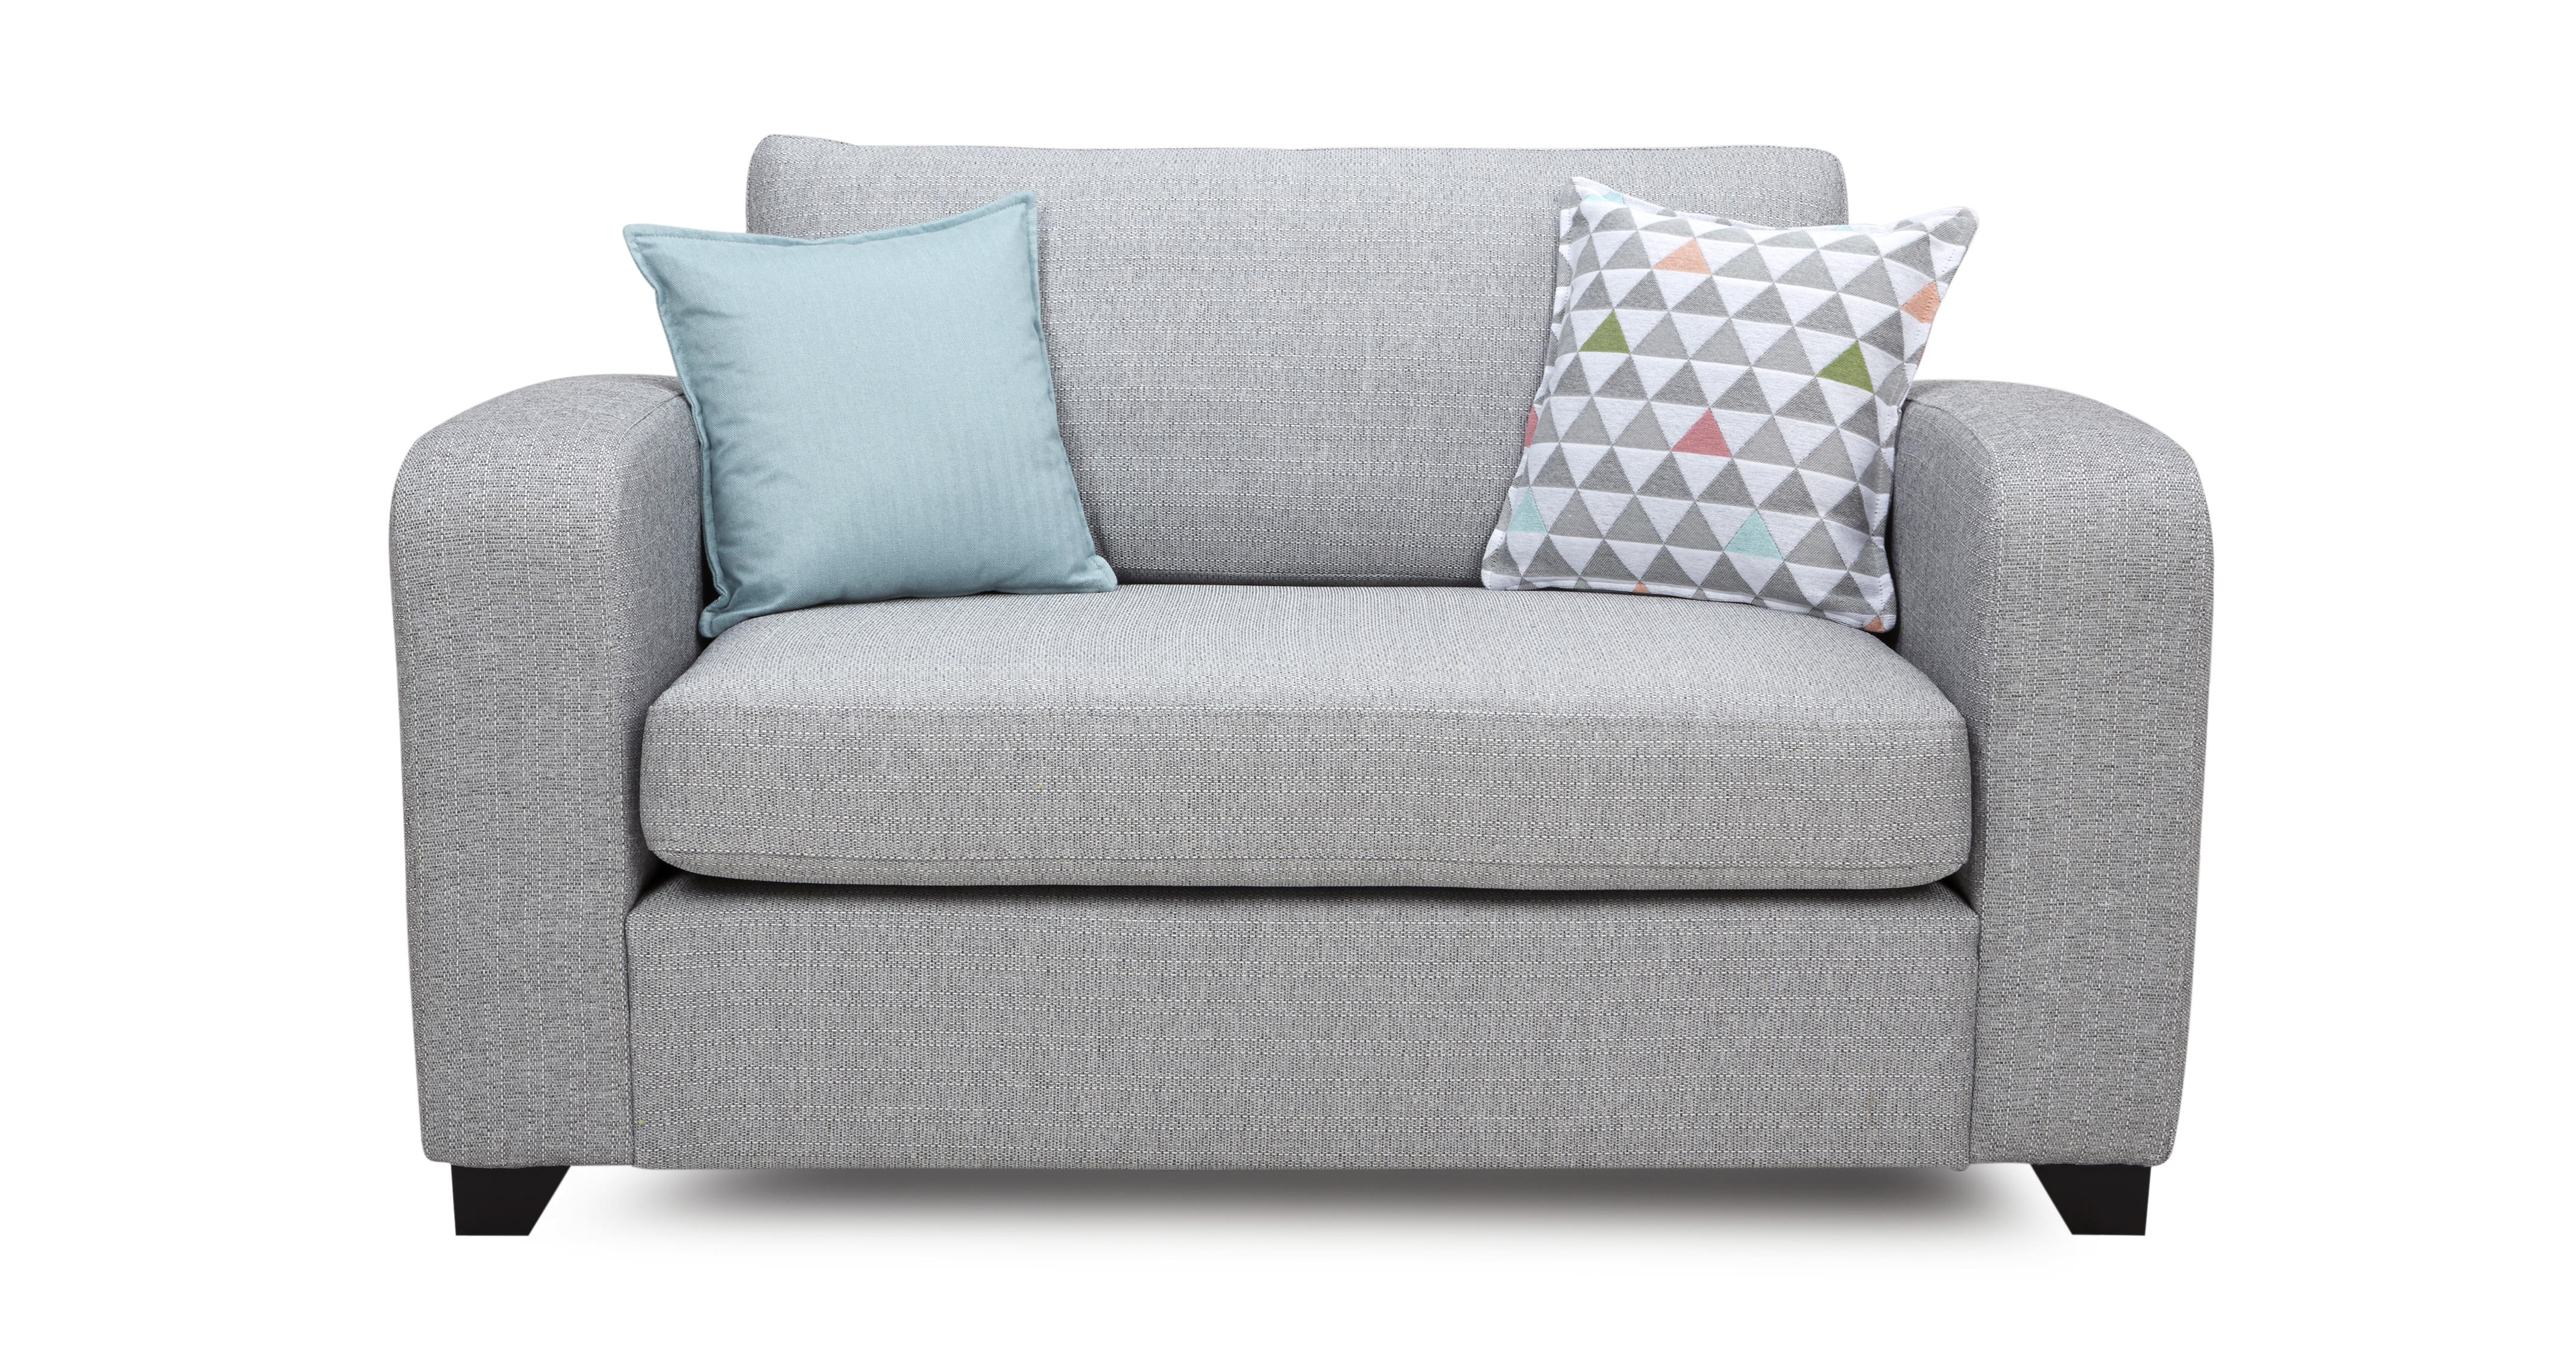 Dfs Sofa Care Lydia Cuddler Sofa | Dfs Ireland